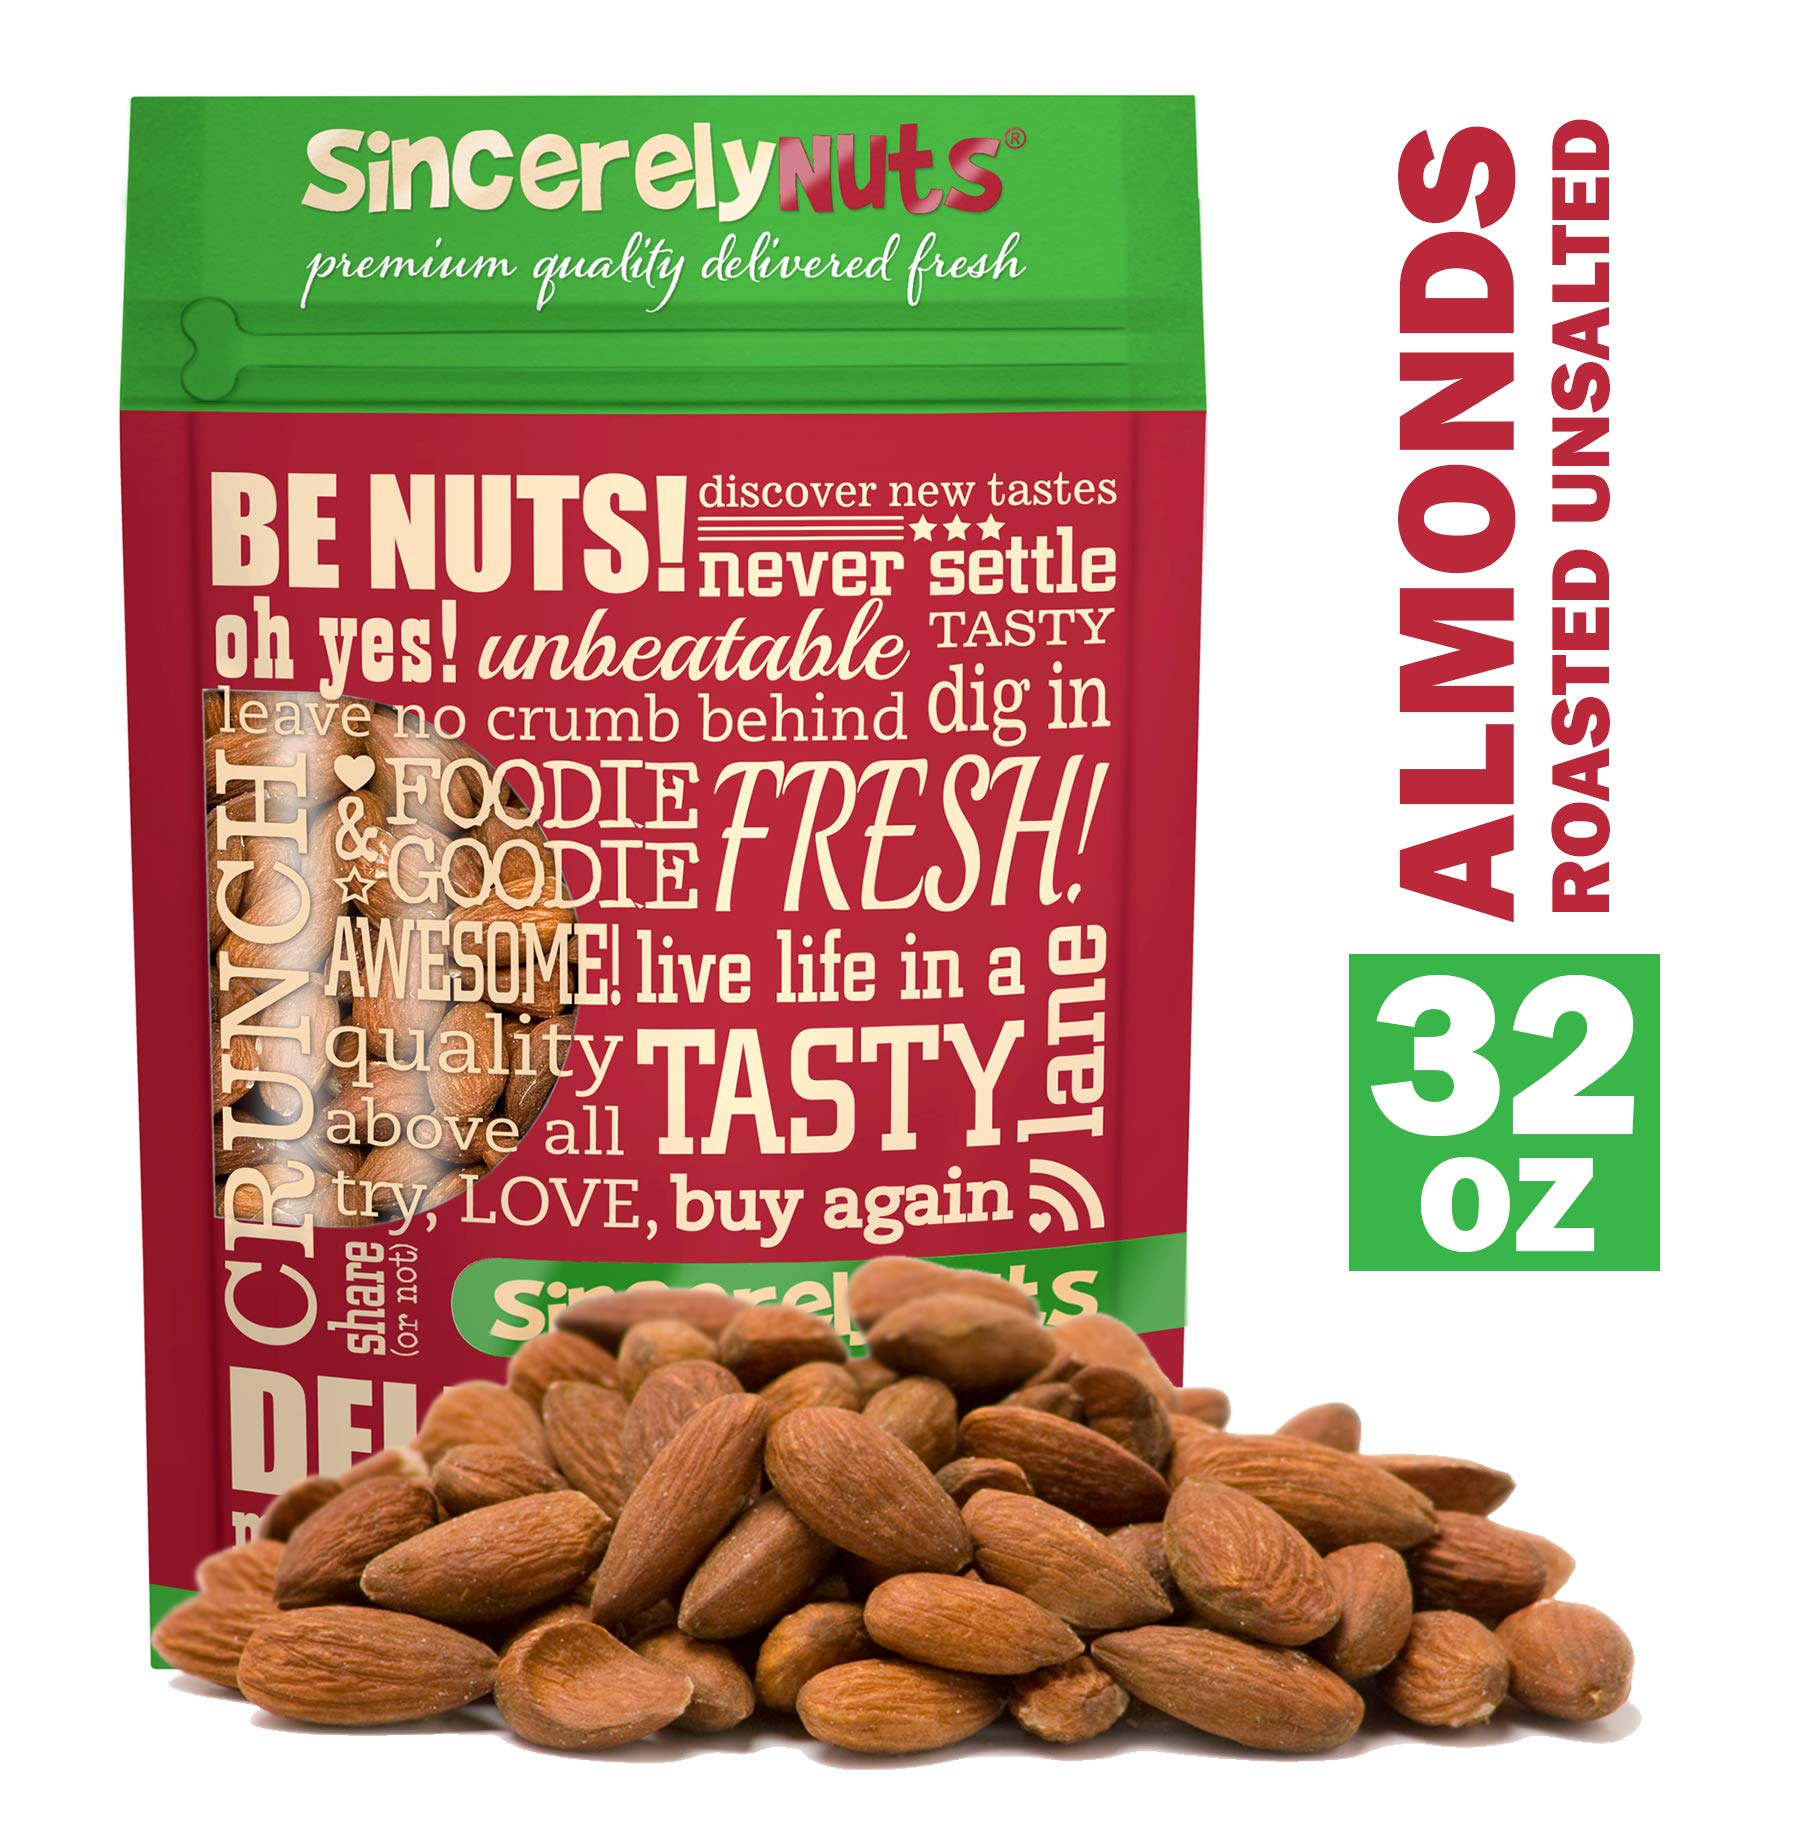 Sincerely Nuts - Roasted Whole Unsalted Almonds | 2 Lb. Bag | Delicious Guilt Free Snack | Low Calorie, Vegan, Gluten Free | Gourmet Kosher Food | Source of Fiber, Protein, Vitamins and Minerals